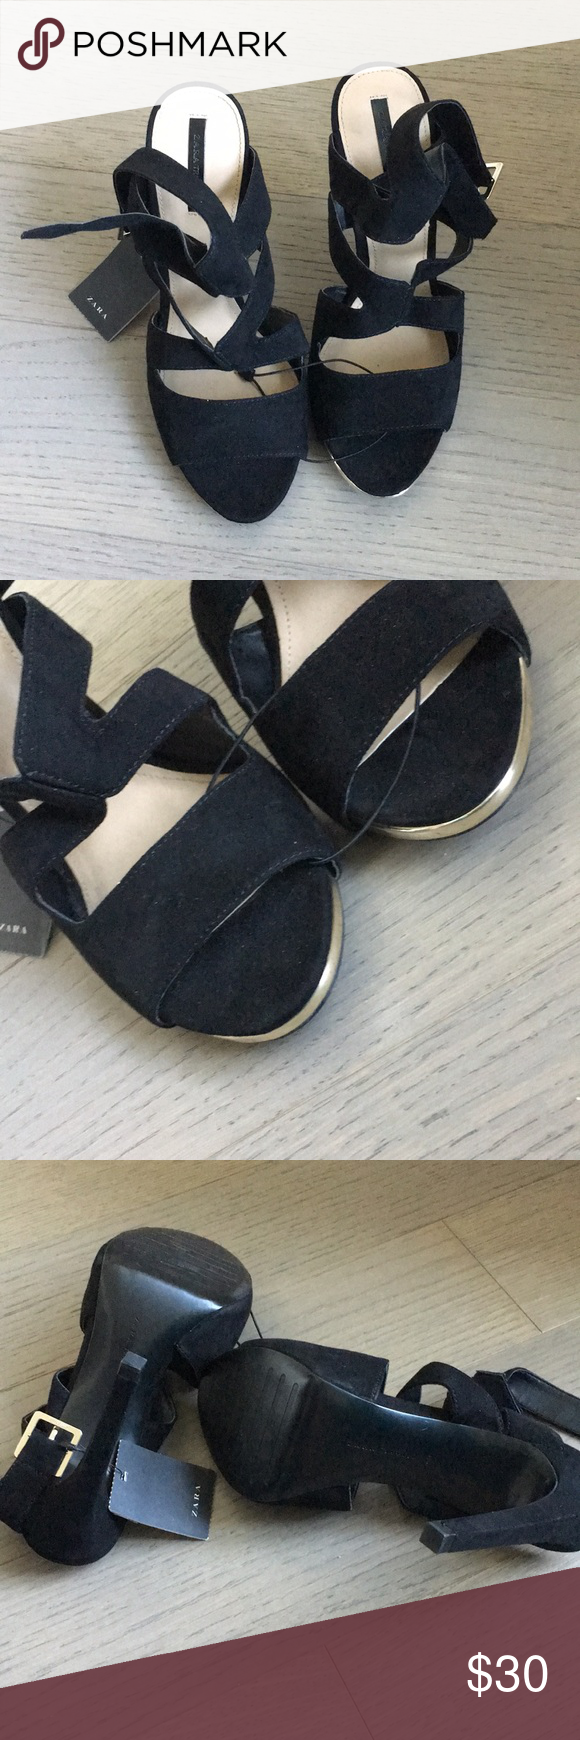 """f2d2bbc6867b NWT Zara Sandals NWT Zara sandals. Gold trim in the front of the shoe. The  shoes are not leather. Size 9 US  40 EU. Heel height 5"""". Zara Shoes Sandals"""